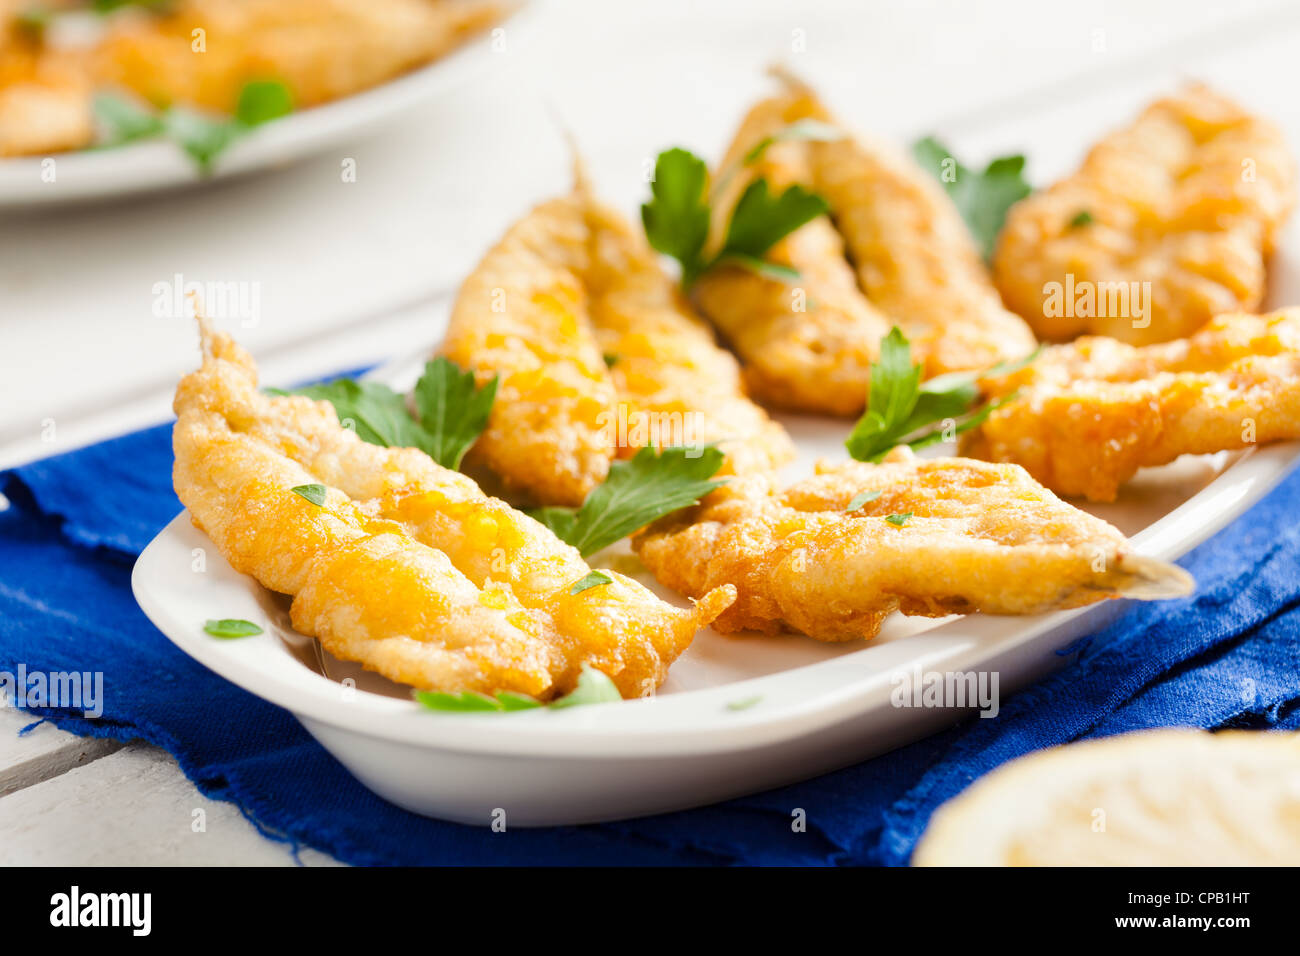 Fried Anchovies with Parsley and Lemon - Stock Image